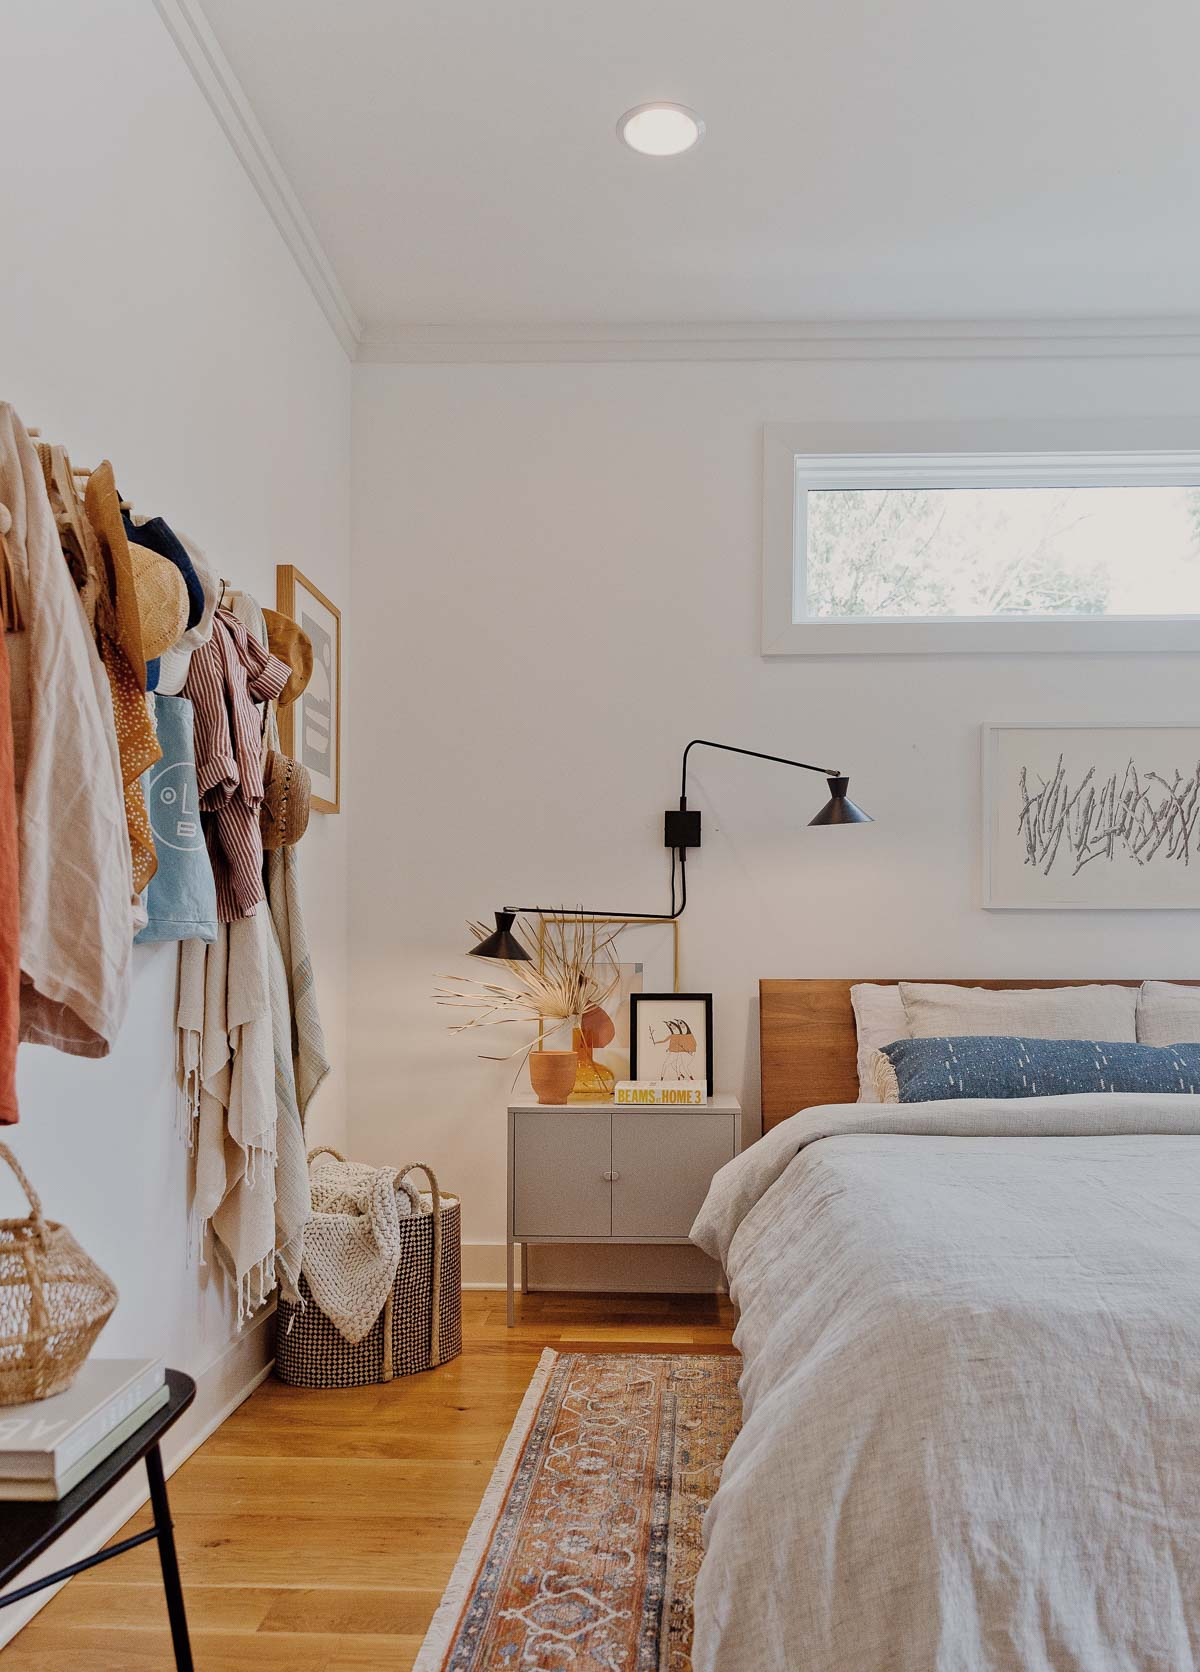 Simple modern bedroom with earthy colorful accessories.